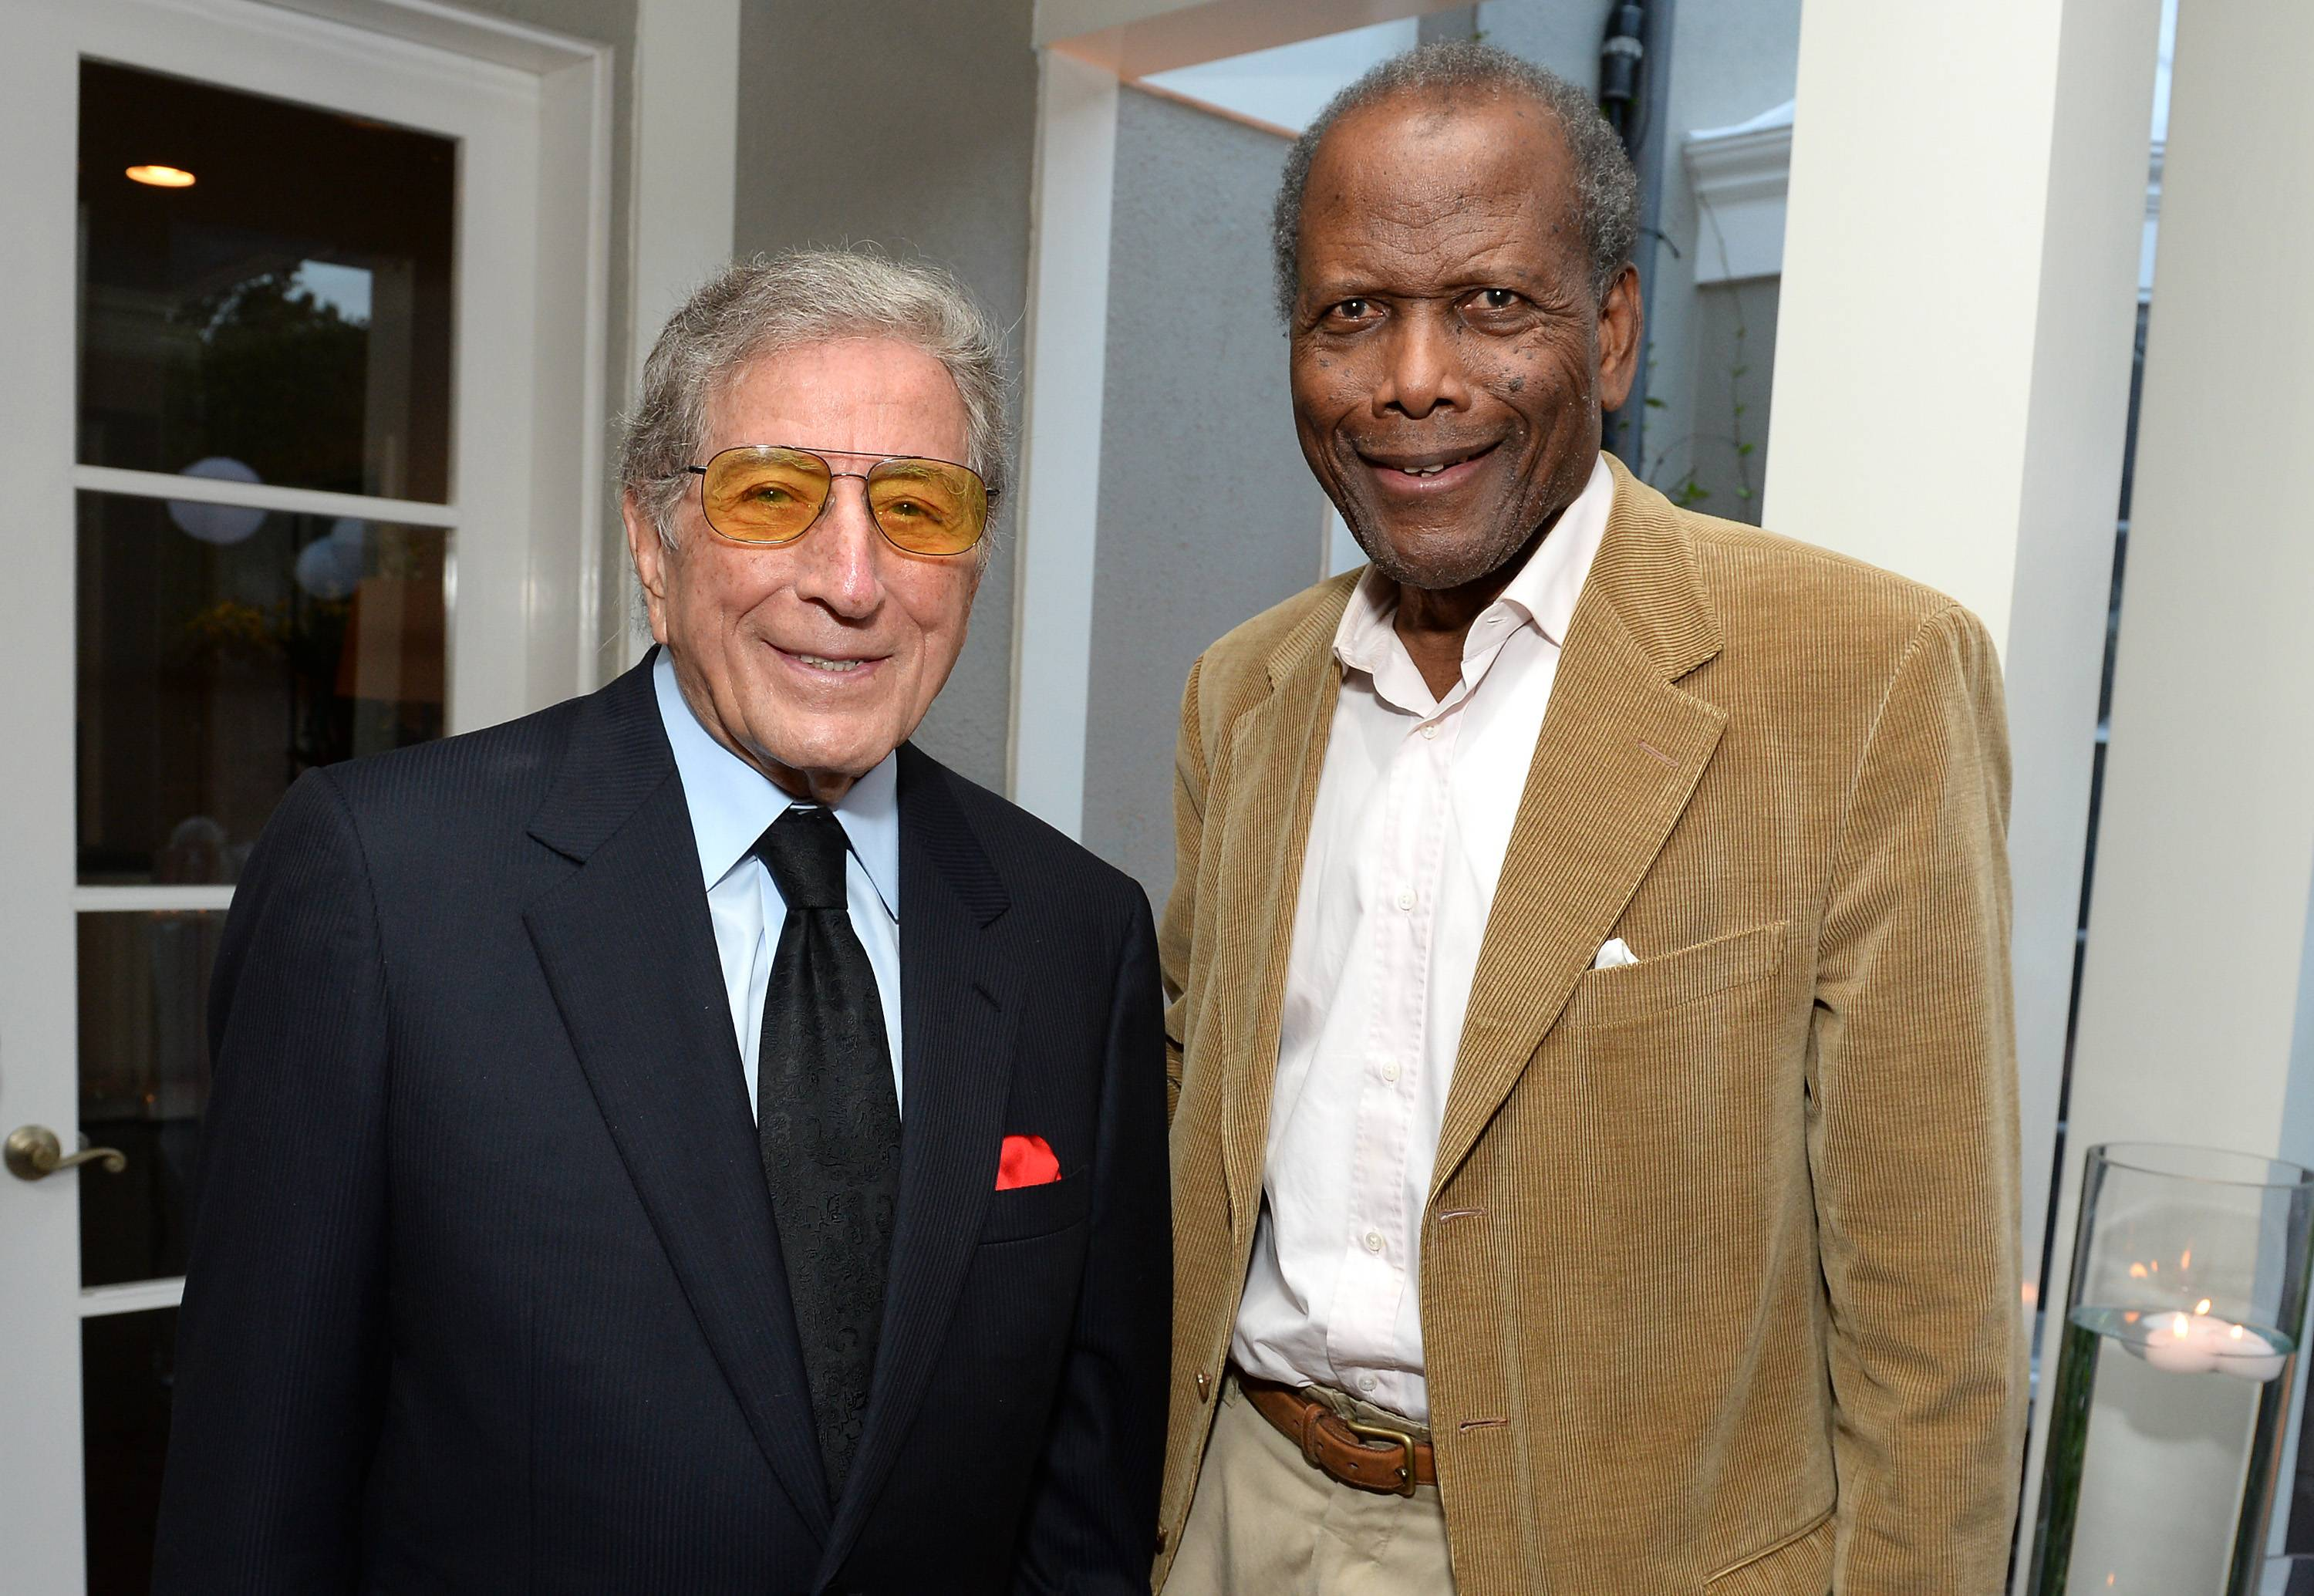 A Celebration Of Tony Bennett And Exploring The Arts